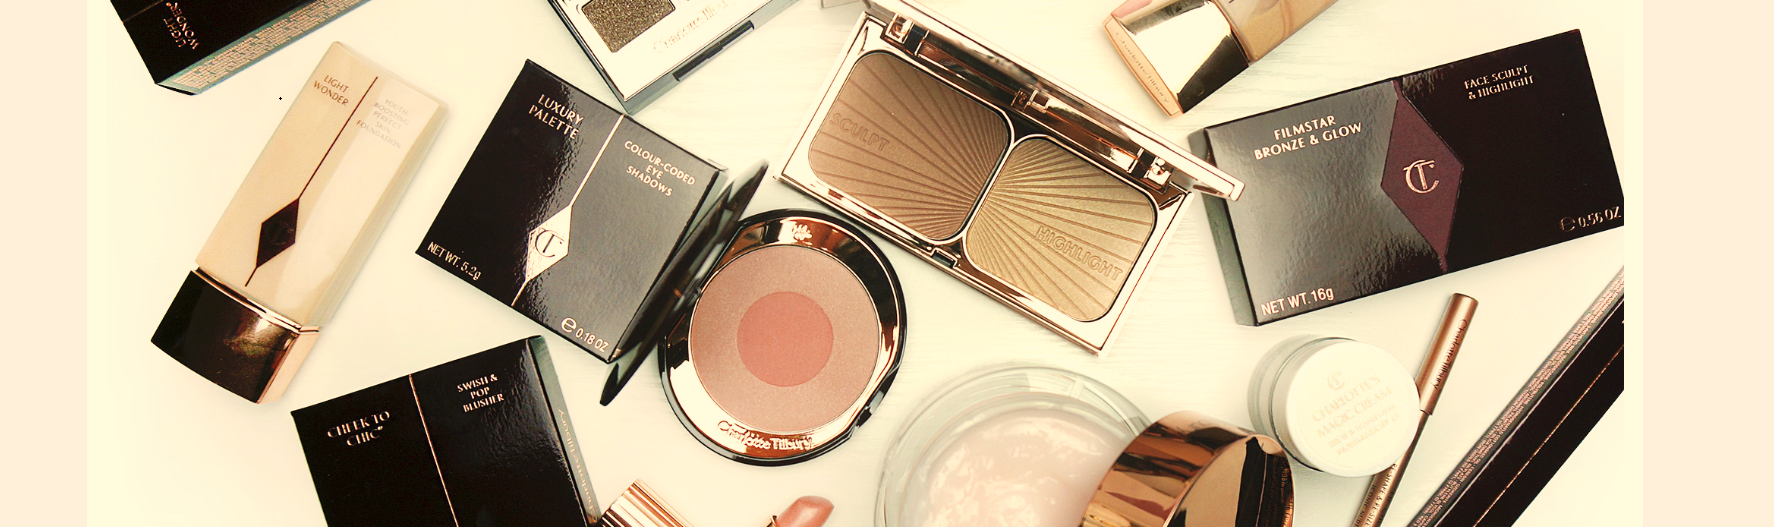 Charlotte Tilbury Products.